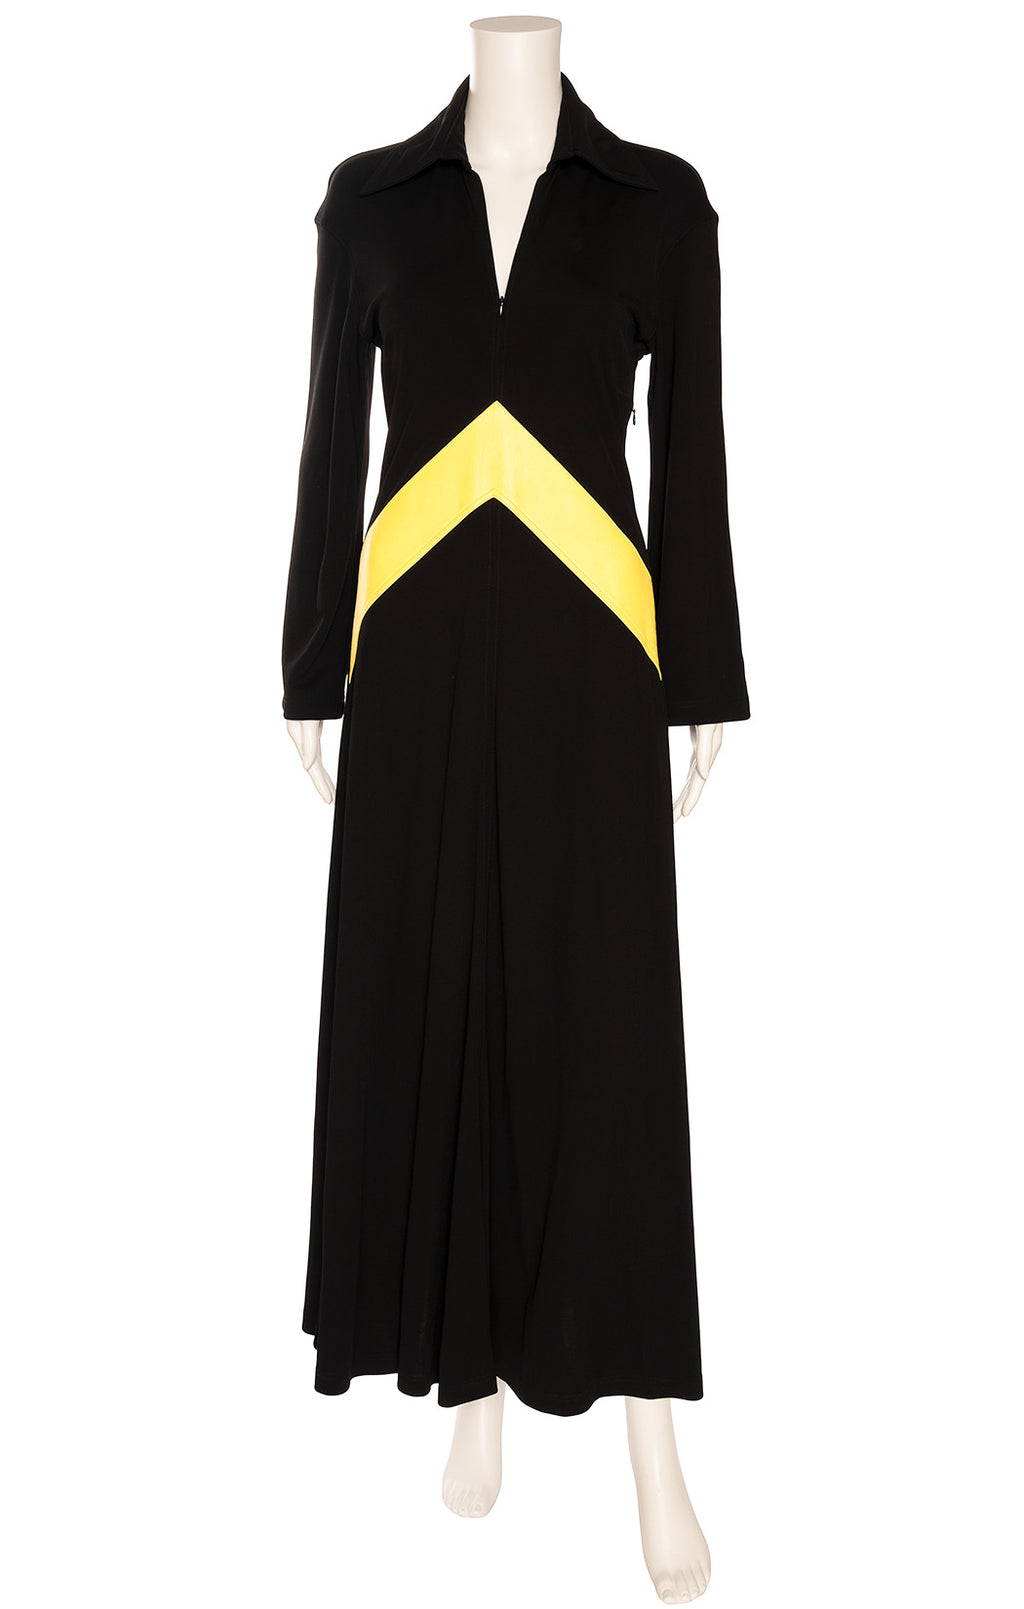 CELINE  Dress Size: FR 36 (comparable to US 4)